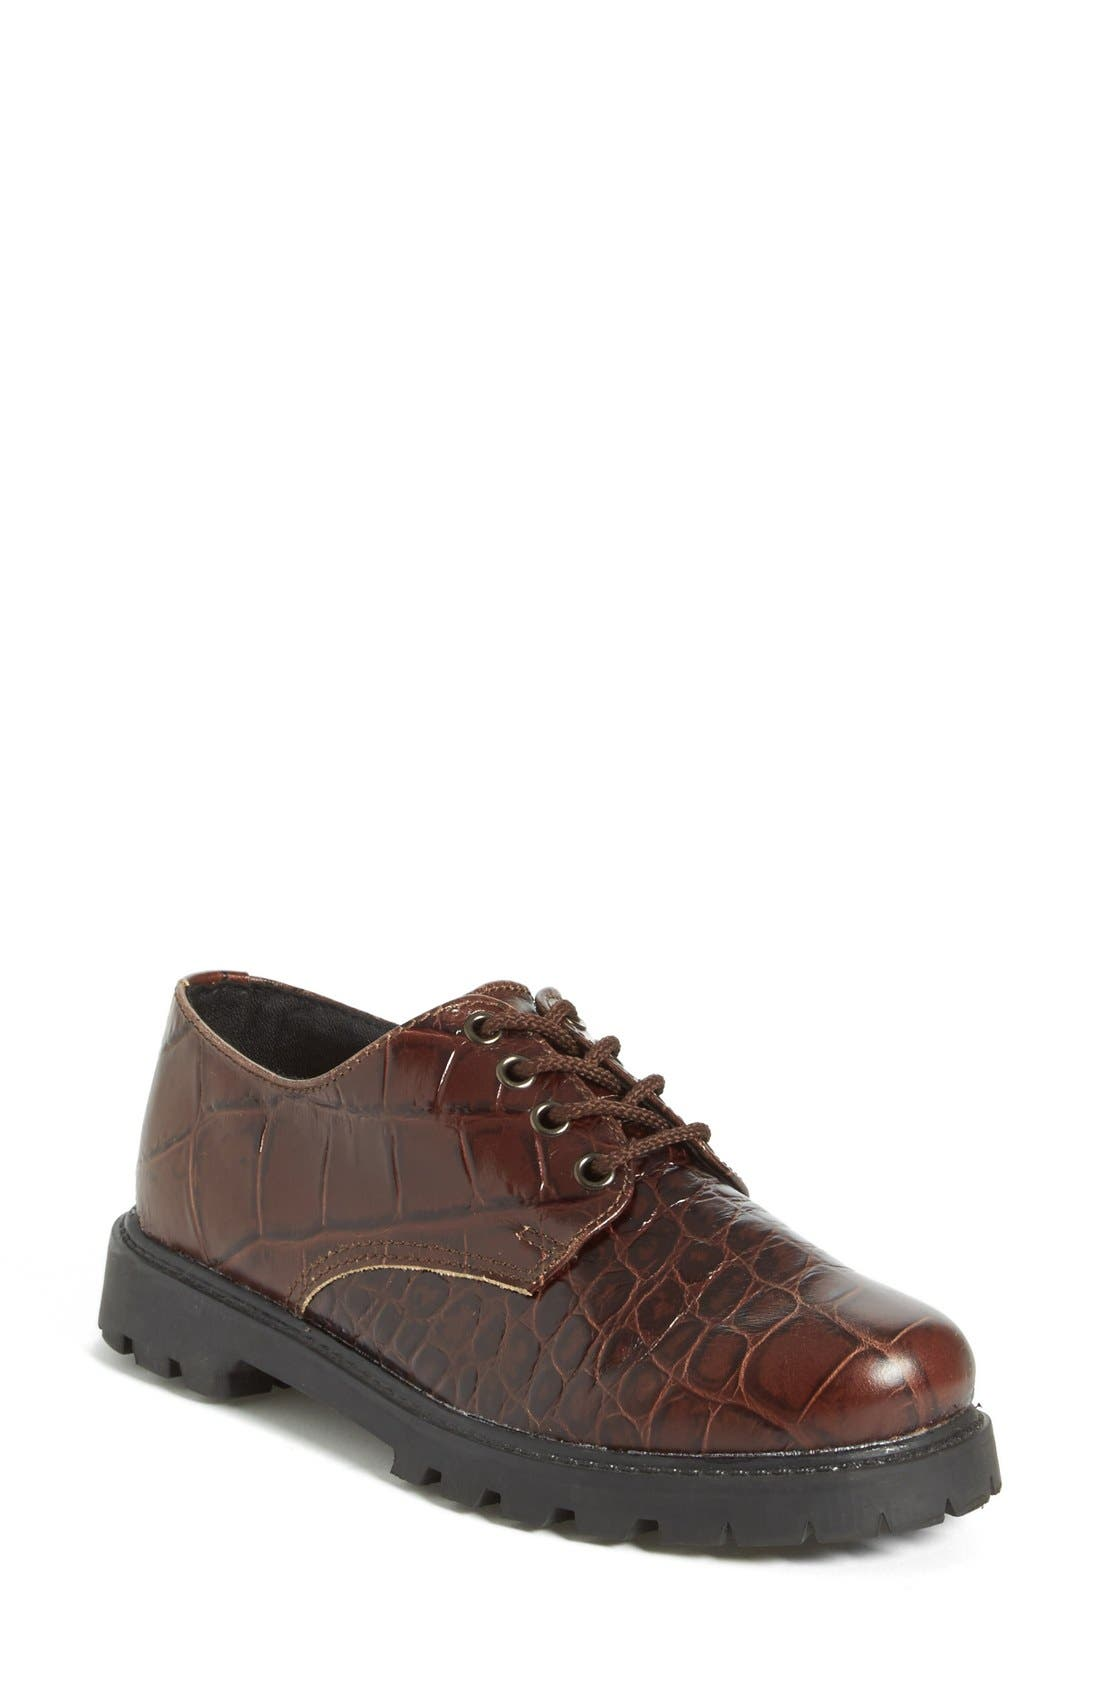 BROTHER VELLIES 'School Shoe' Lace-Up Oxford